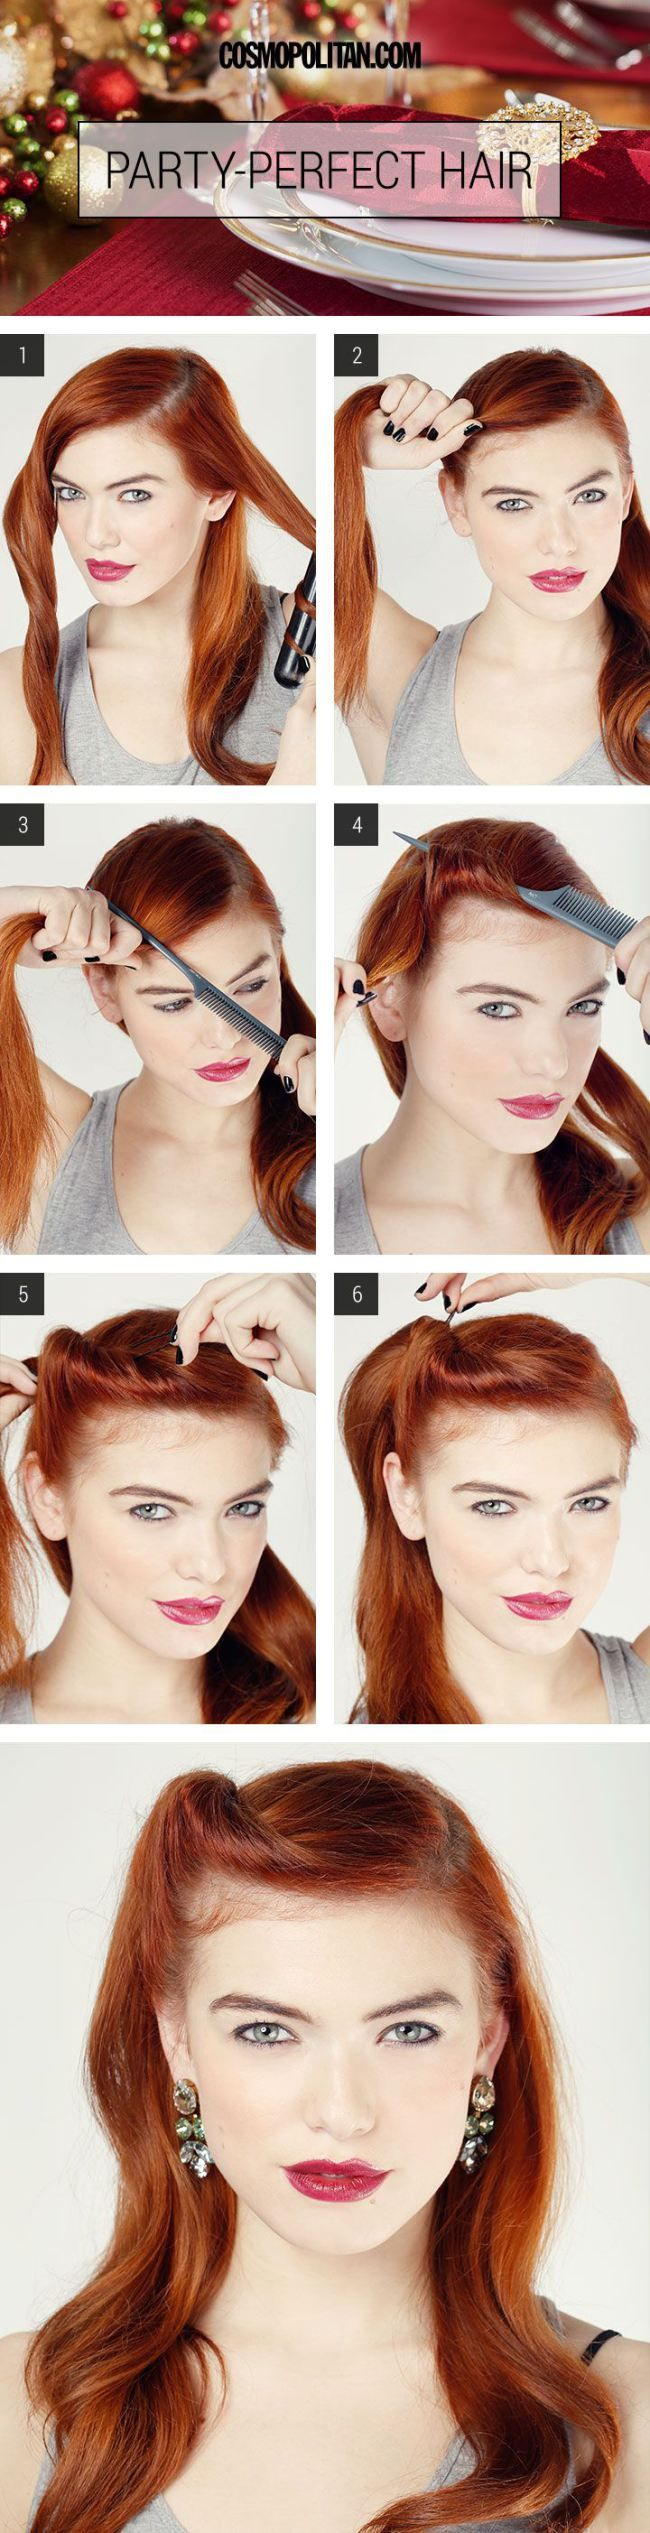 best hairstyles images on pinterest hair makeup make up looks